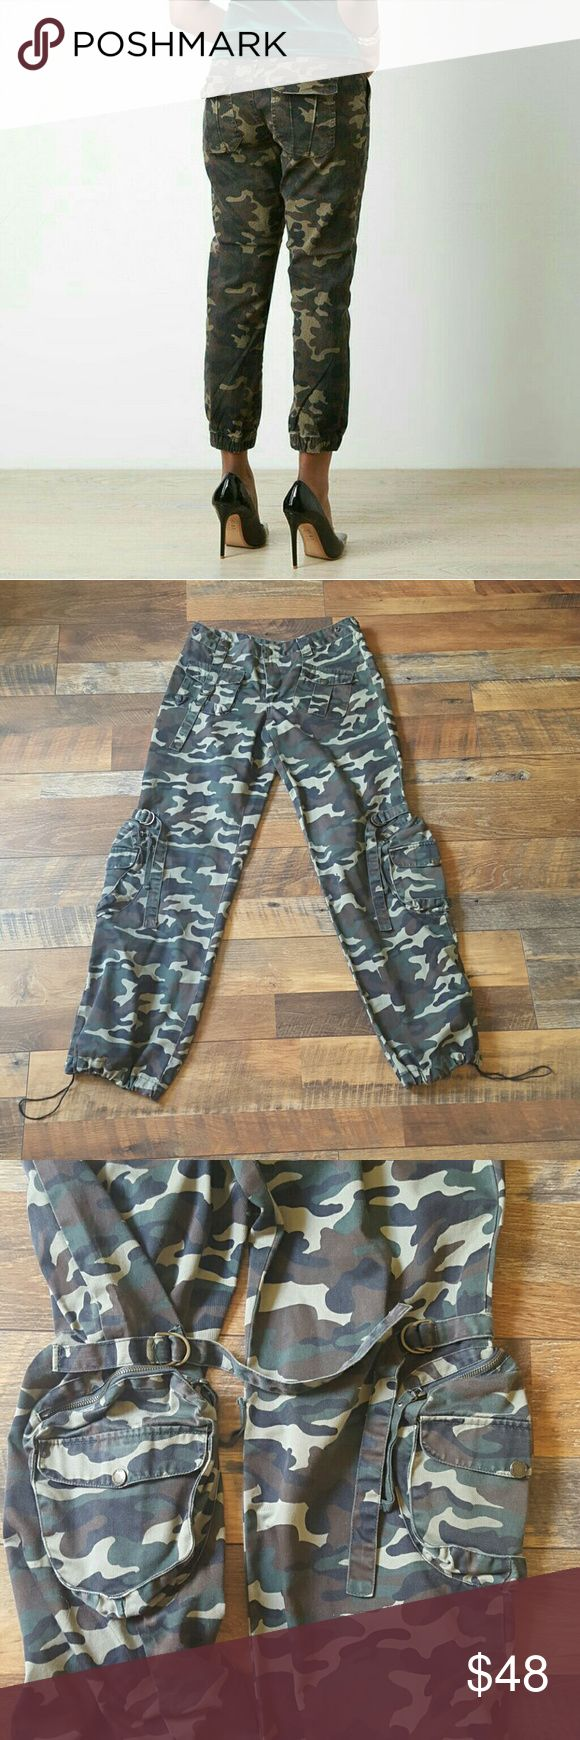 "Camo Red Fox Jeans Camouflage 29 Awesome pair of camo jeans with lots of cool details vintage military camo details throughout. Has adjustable waist snap on place the pants can be make a straight Fit at the bottom or adjust.  • 2 back pockets with straps  • 2 front pockets with straps/ button  • 2 Pockets on the legs with straps above them • Waist can be adjusted from 29 to 32 • 40% Polyester  60% cotton   Brand: Red Fox  Marked size: L Measurements  • Waist: 29""  32"" • Hips: 42"" • Rise: 9 •…"